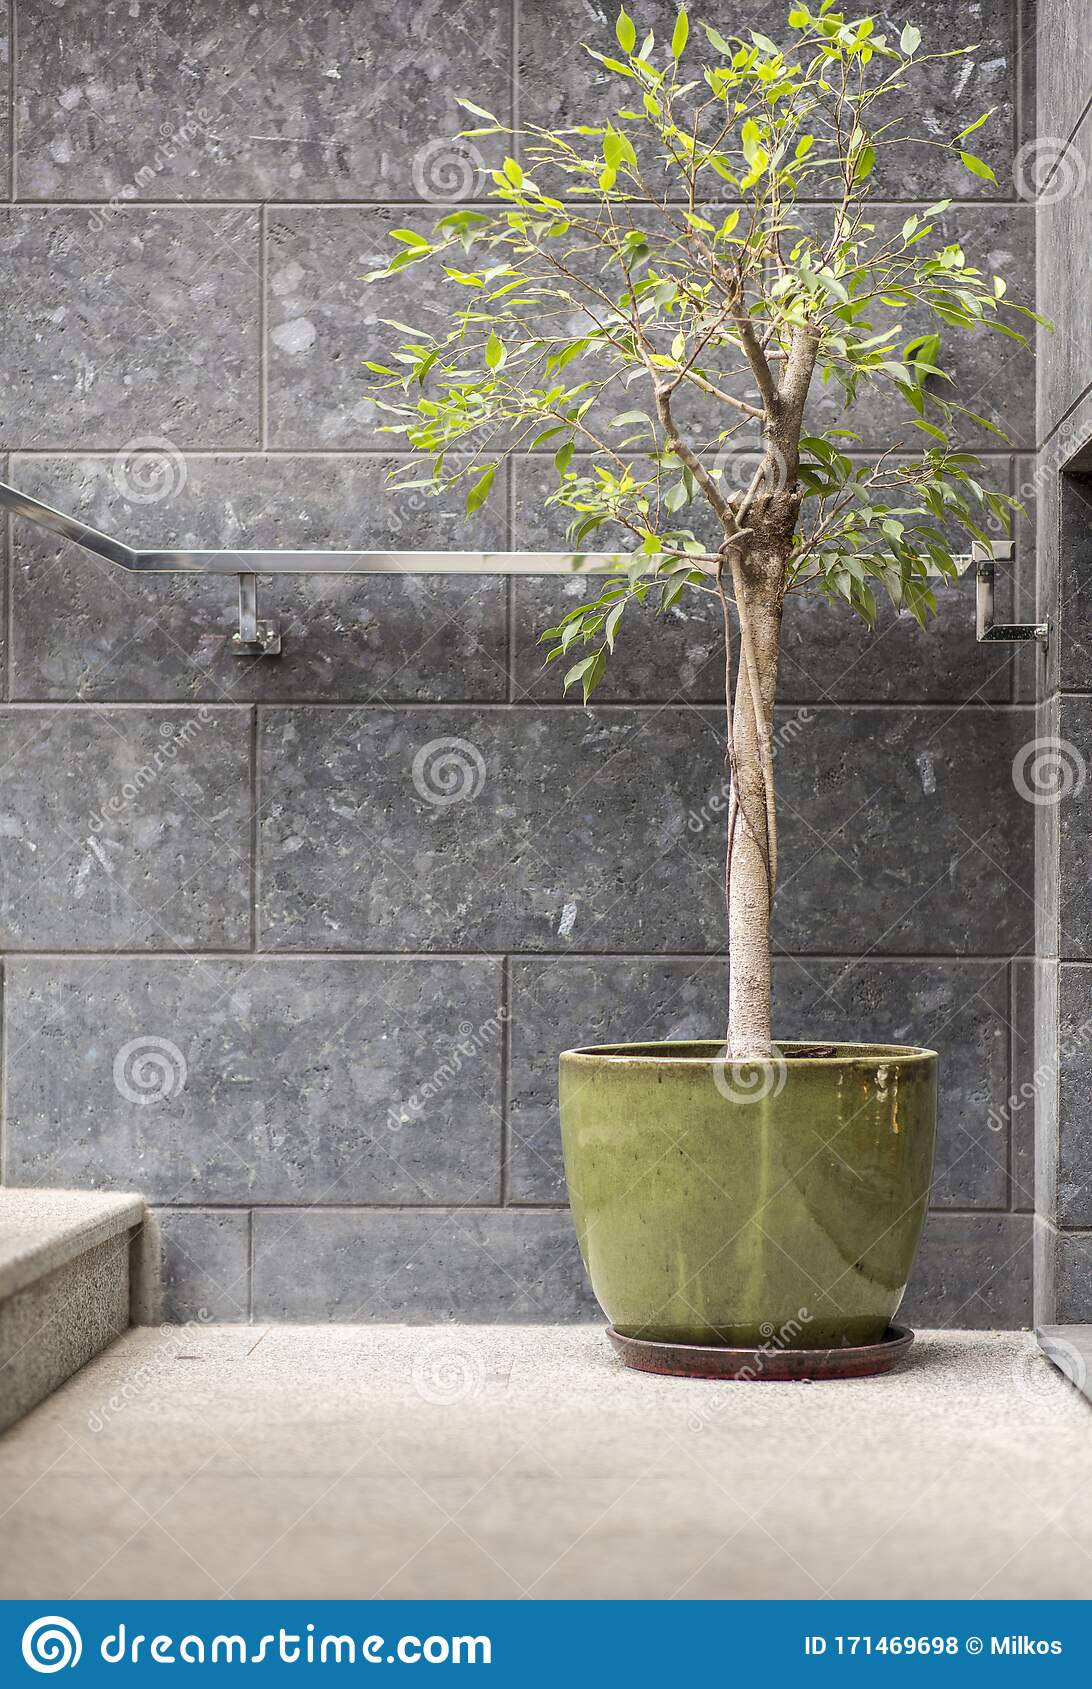 Exterior Architecture And Front Store Design Of Coffee Cafe Stock Photo Image Of Abstract Blurred 171469698